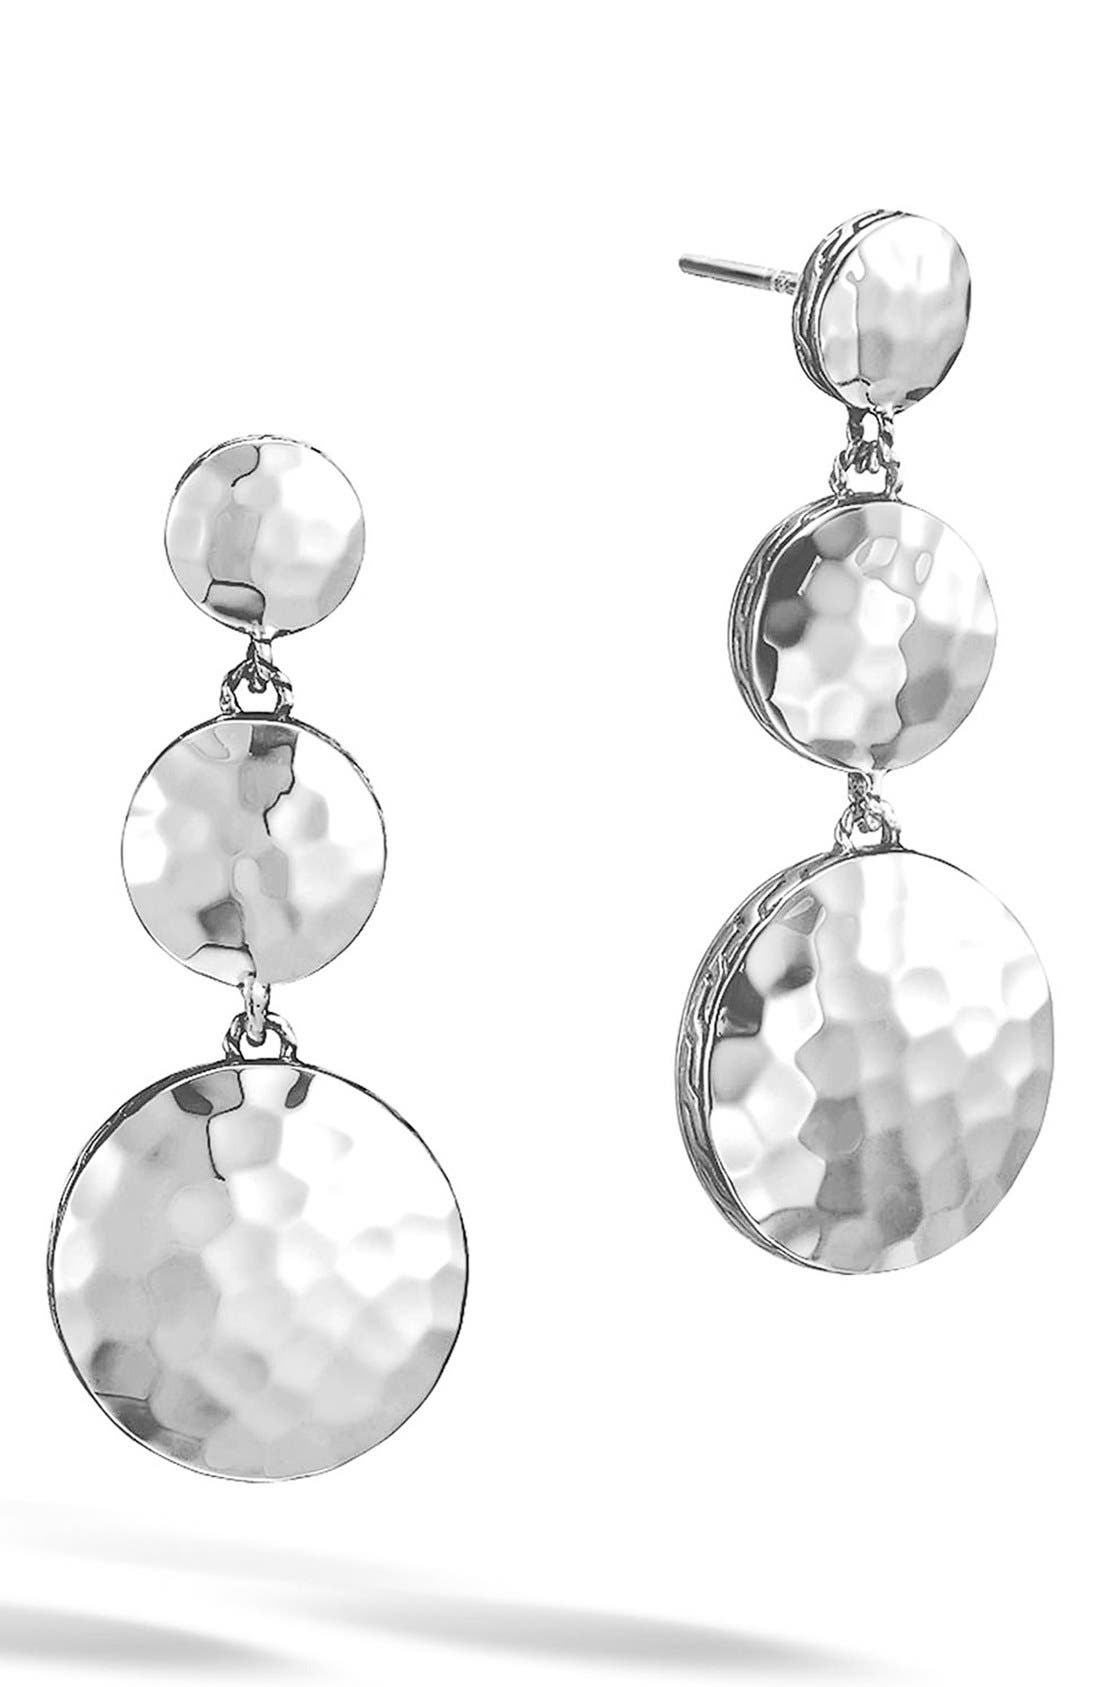 'Dot' Drop Earrings,                         Main,                         color, Silver